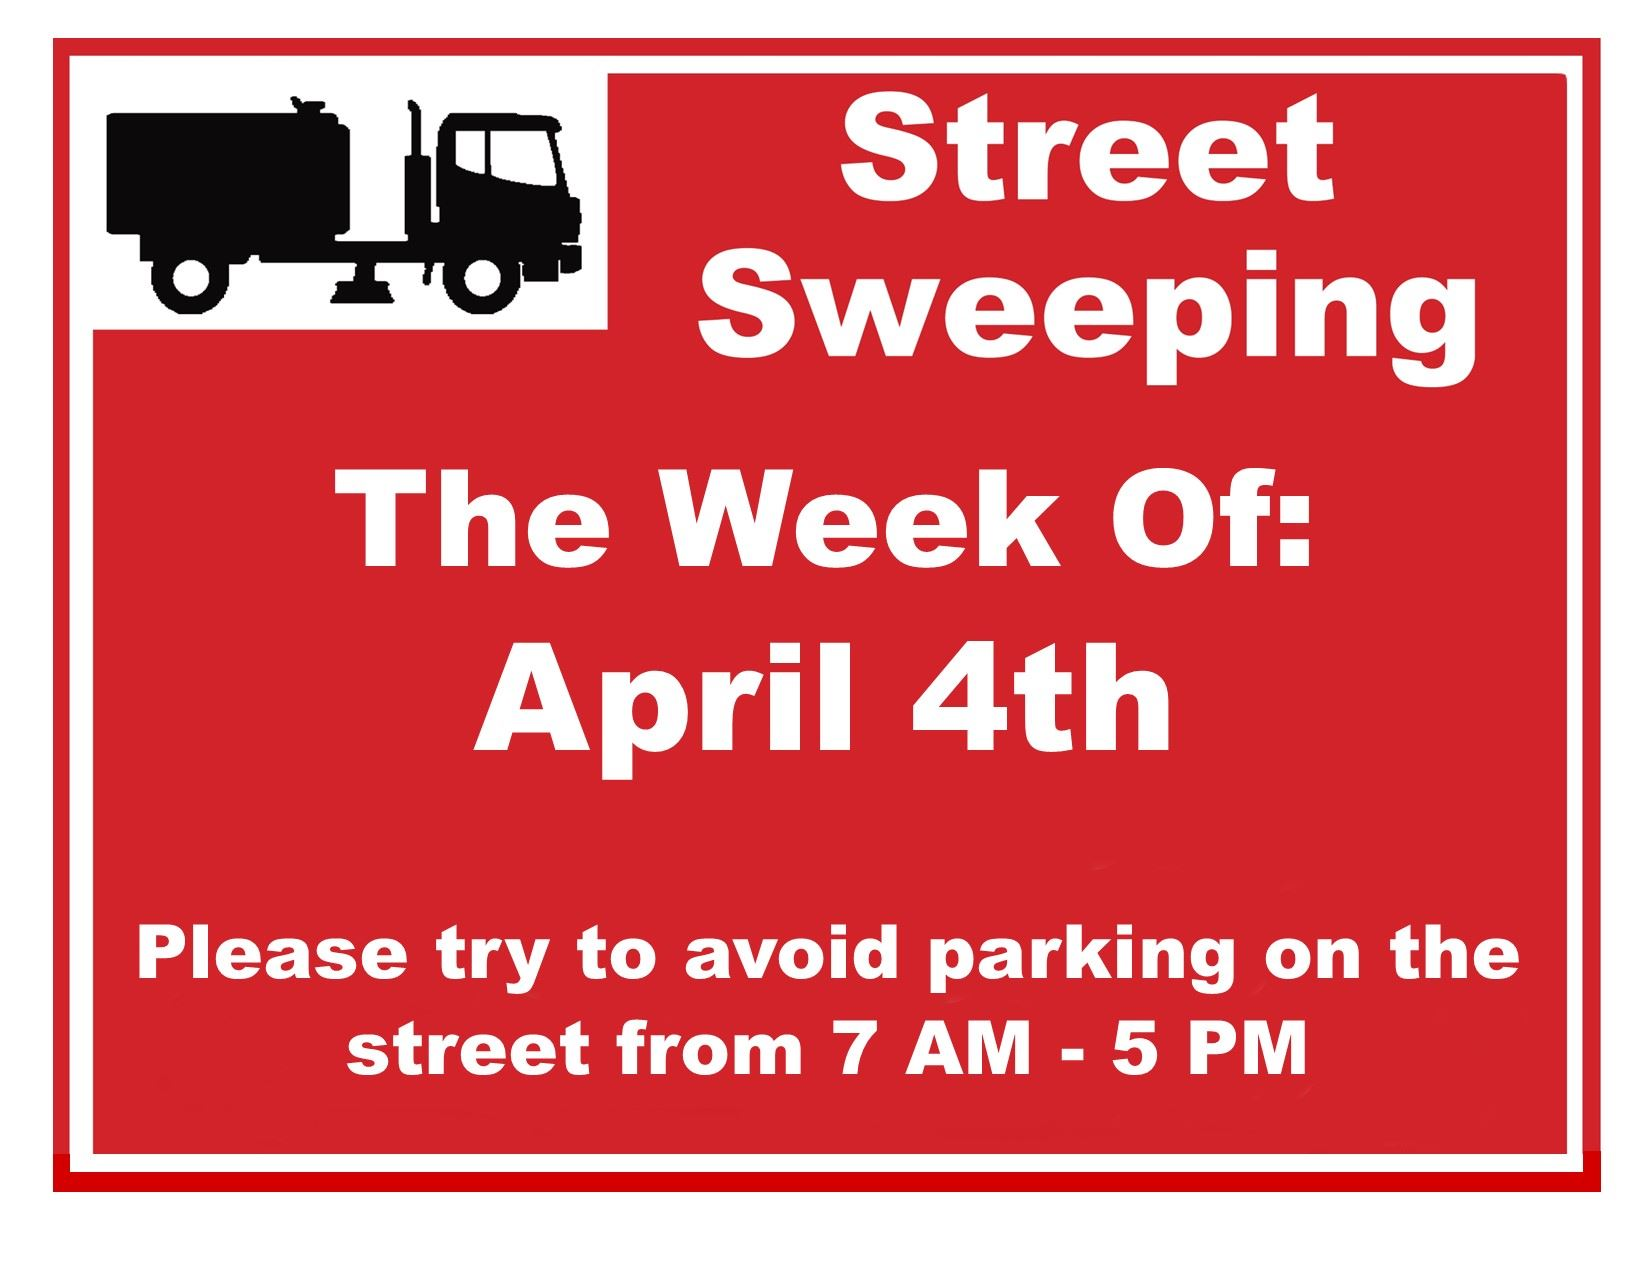 Street Sweeping Sign (IMAGE)